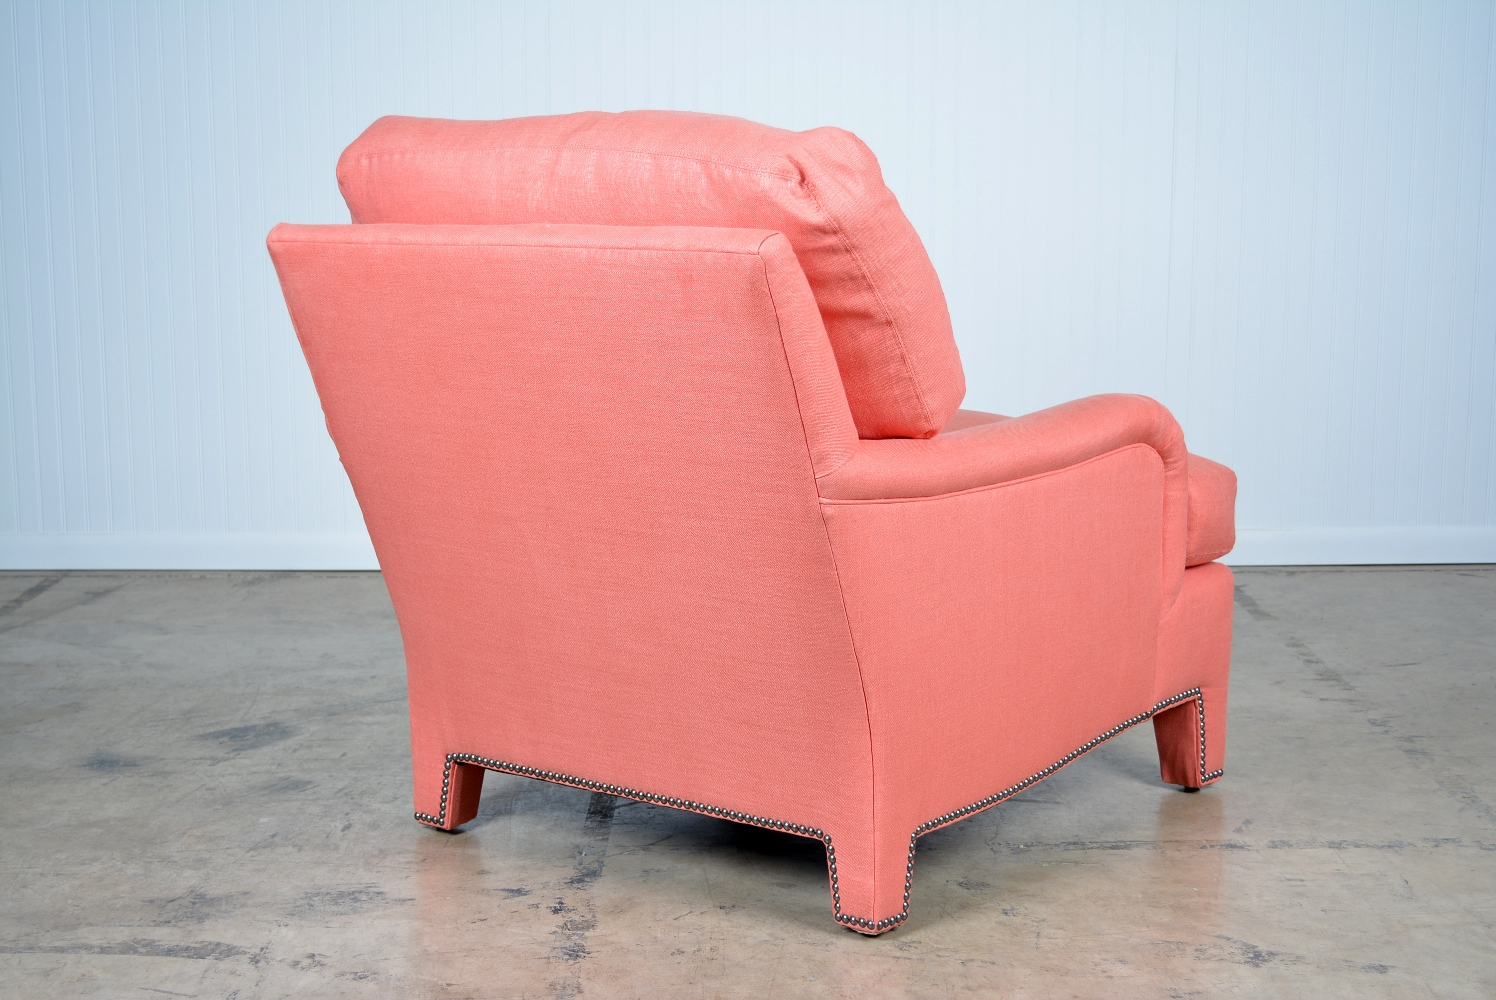 Marvelous Rolled Arm Coral Upholstered Chair